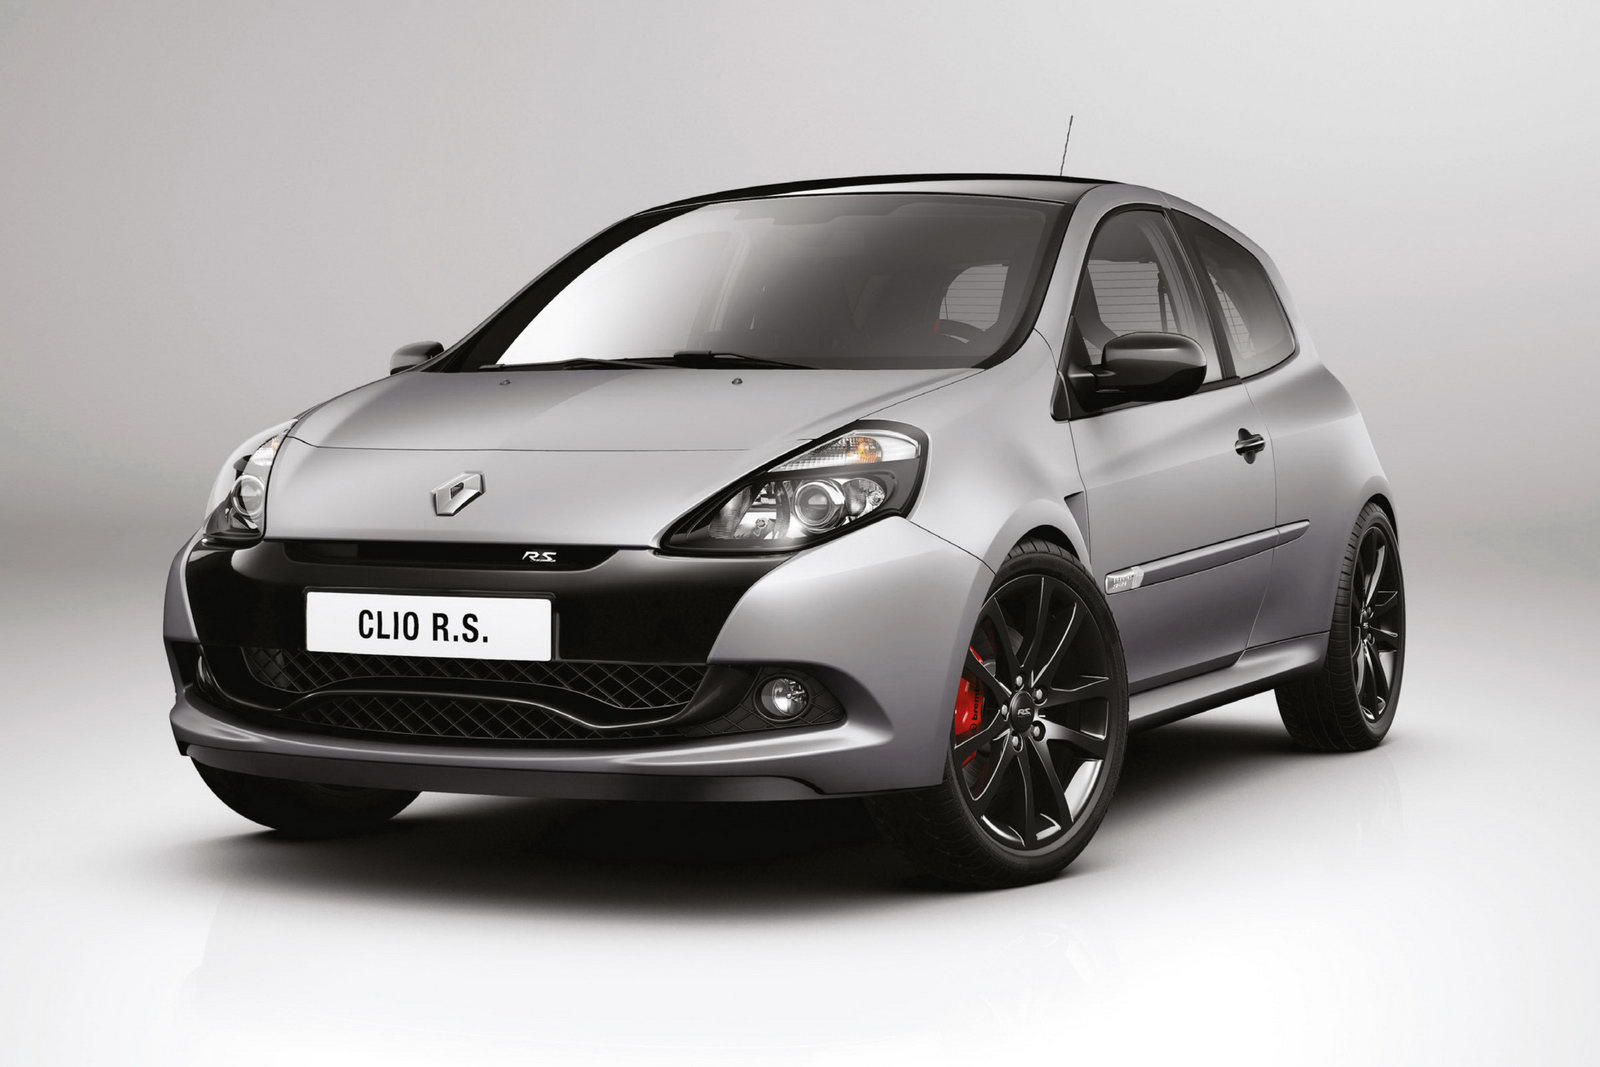 latest renault clio rs 200 ange d mon model to be produced in 666 units. Black Bedroom Furniture Sets. Home Design Ideas